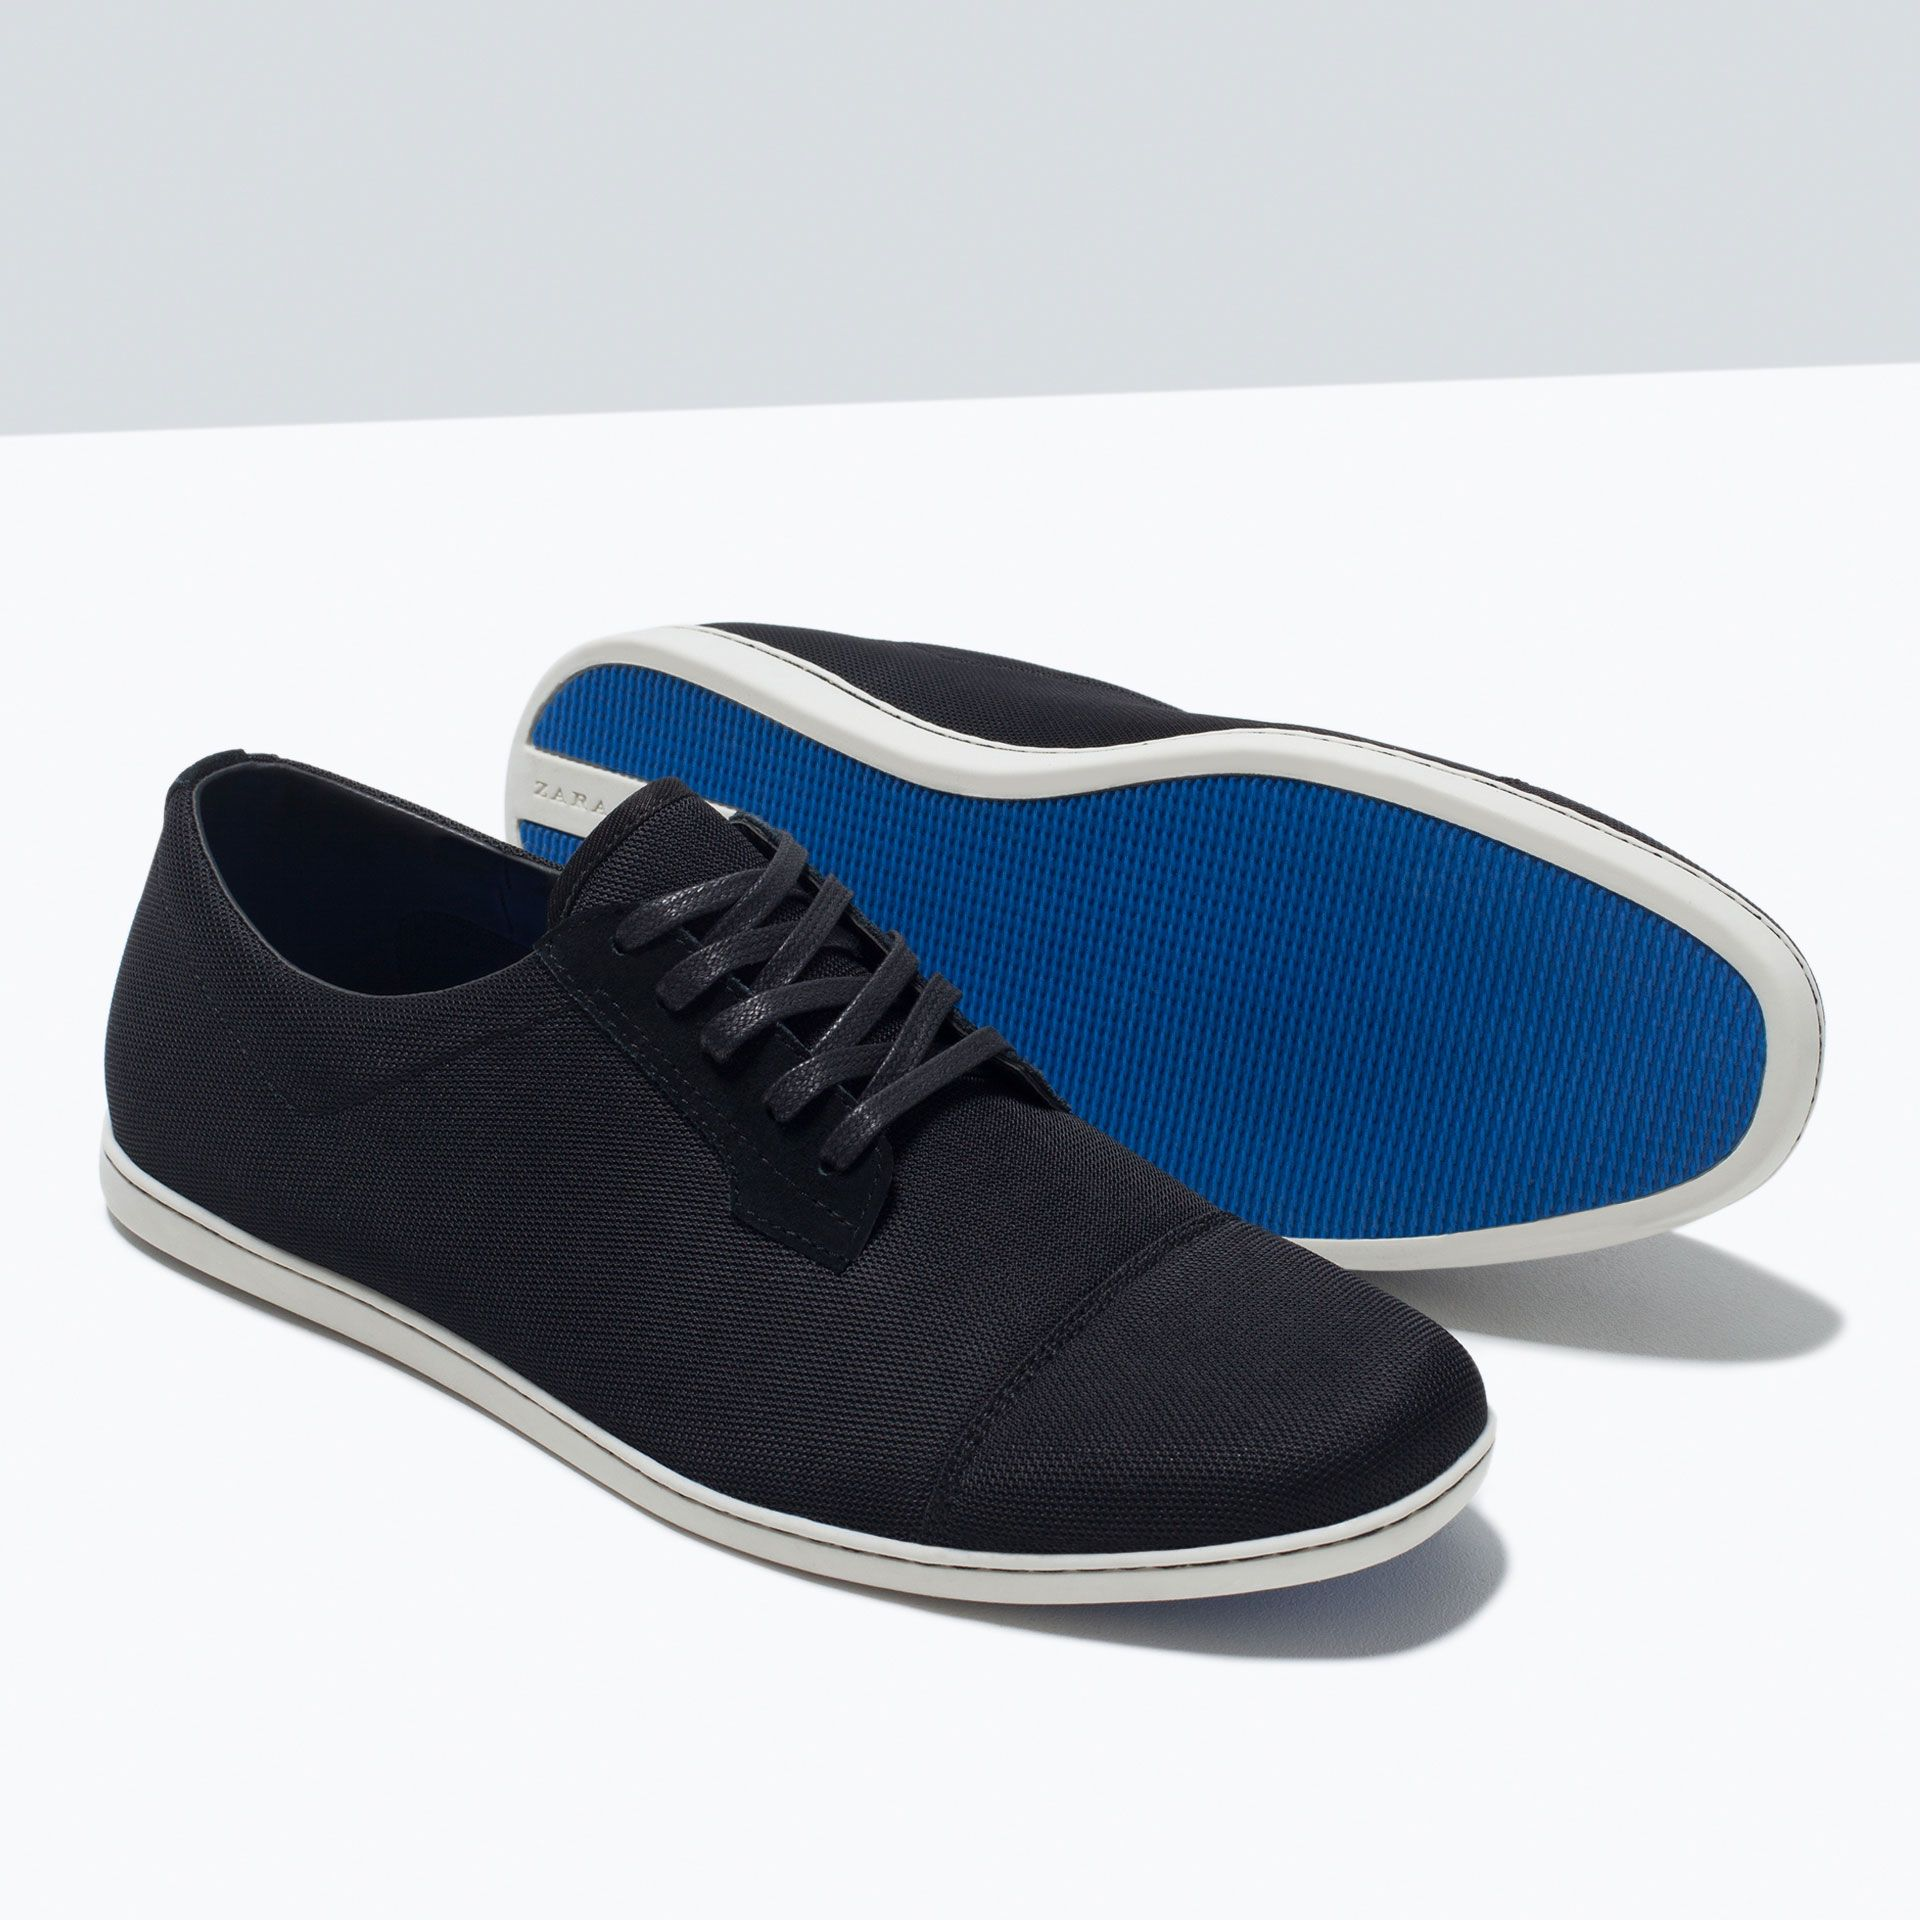 7d06d4688ebb FABRIC CAP TOE SNEAKERS - Shoes - MAN - SALE